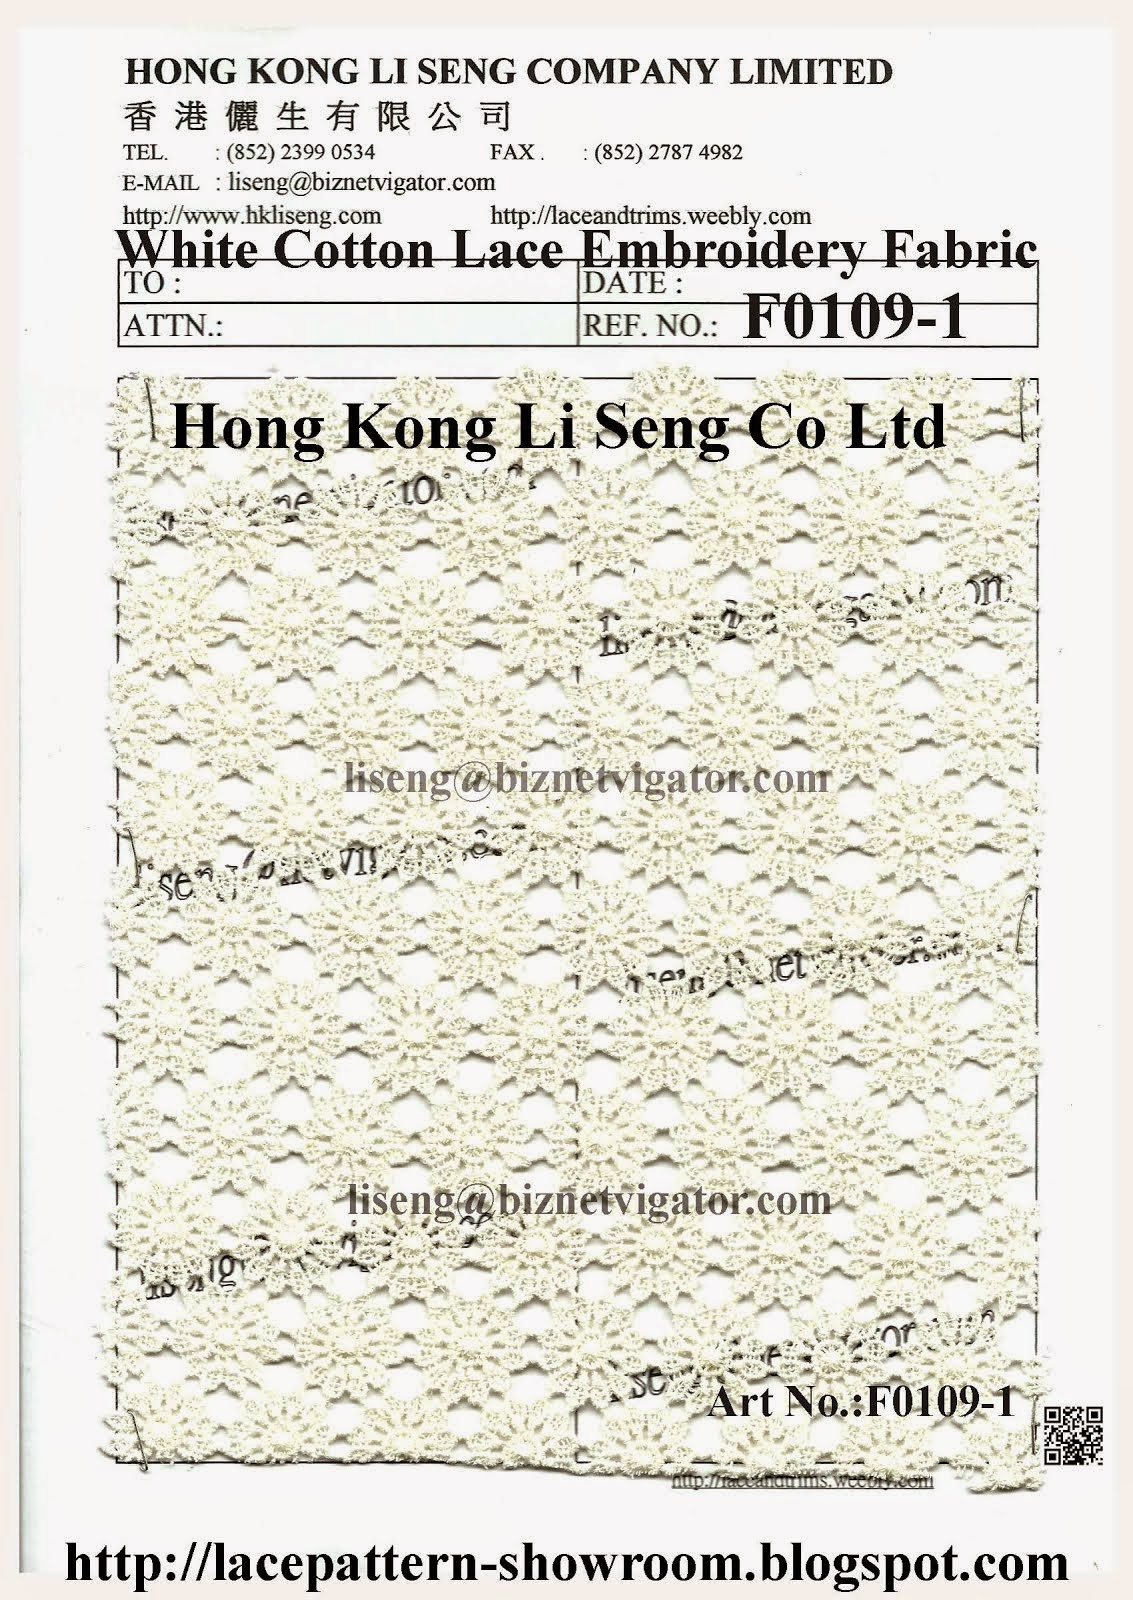 White Cotton Lace Embroidery Fabric Manufactory  - Hong Kong Li Seng Co Ltd